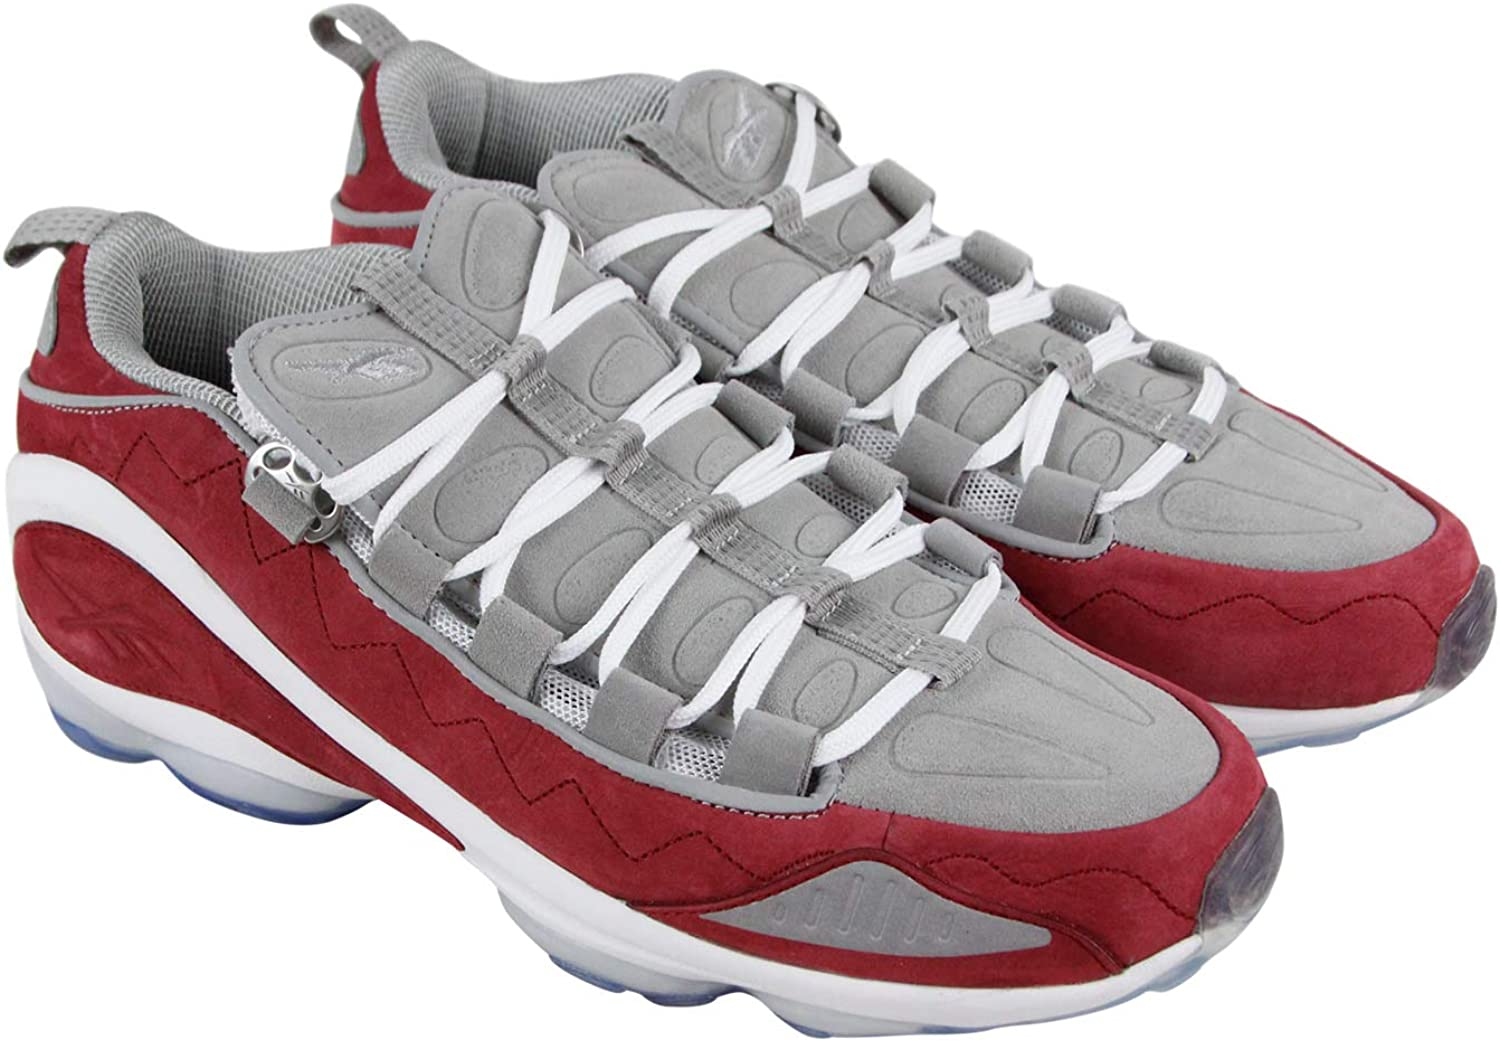 Reebok DMX Run 10 MU Mens Running-Shoes CN4516